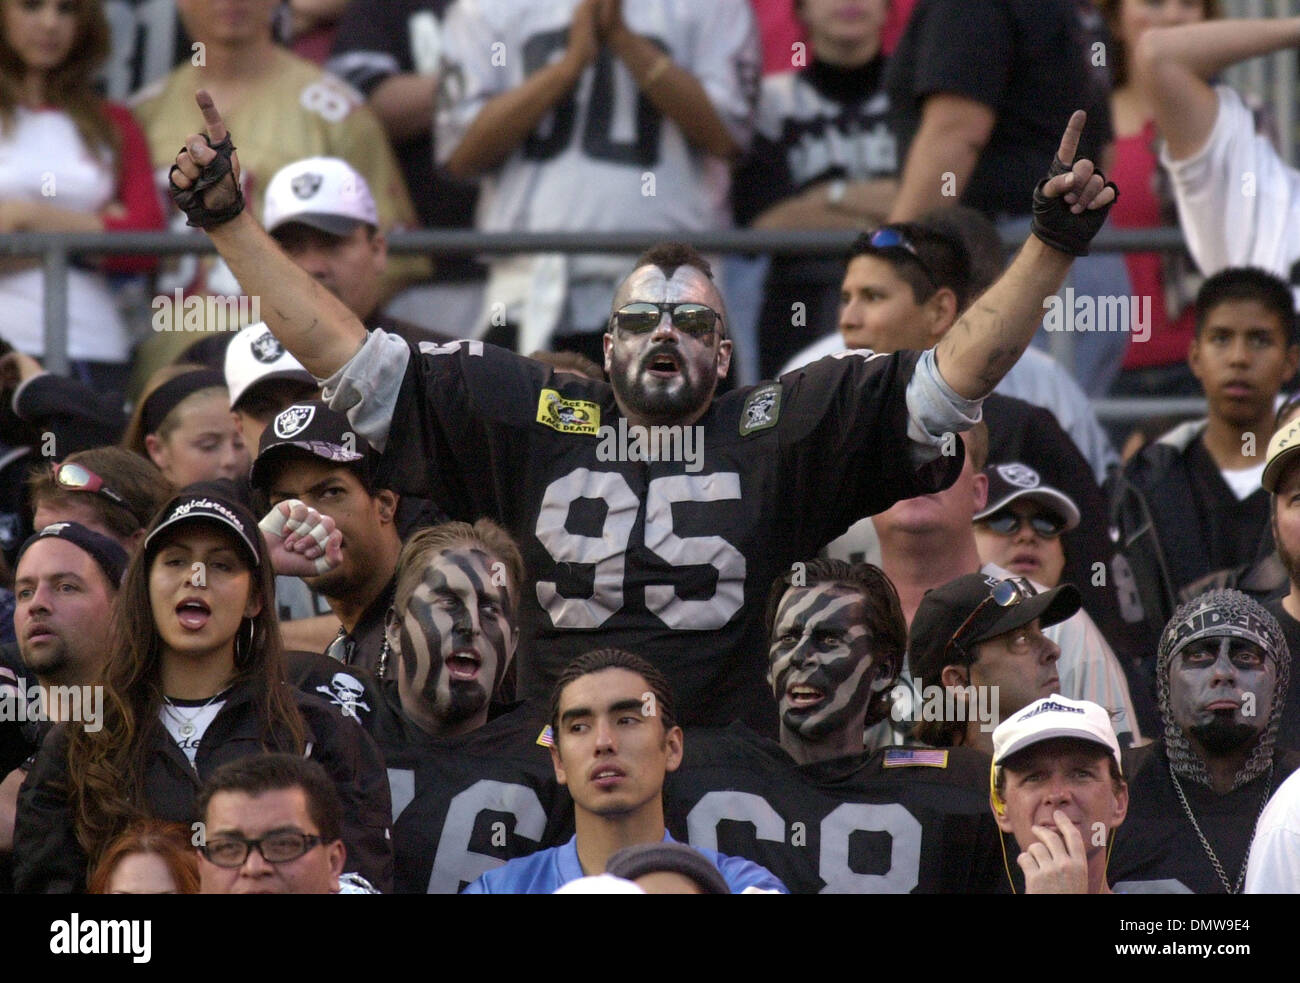 Dec 08, 2002; San Diego, CA, USA; Oakland Raider fans almost out number San Diego Charger fans as they start celebrating in the final minutes of the 4th quarter of their game against the San Diego Chargers on Sunday, December 8, 2002 at Qualcomm Stadium in San Diego, Calif. Oakland beat San Diego 27-7. - Stock Image